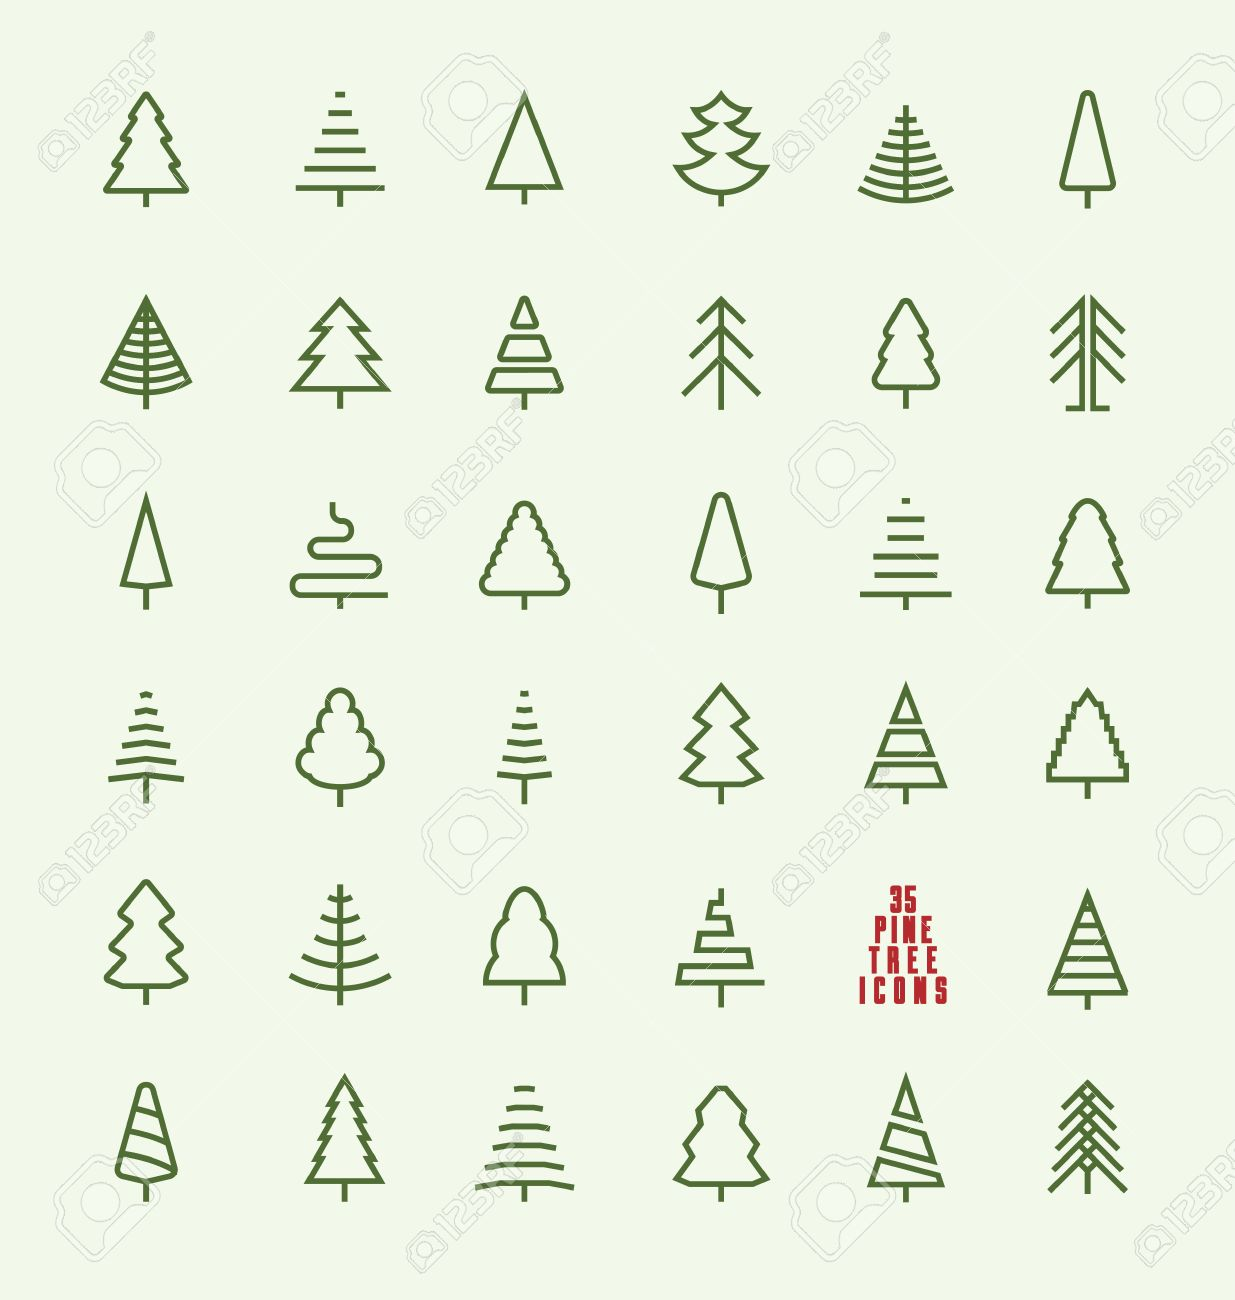 Thin Line Pine Tree Icon Set - A collection of 35 christmas tree line icon designs on light background - 48761375